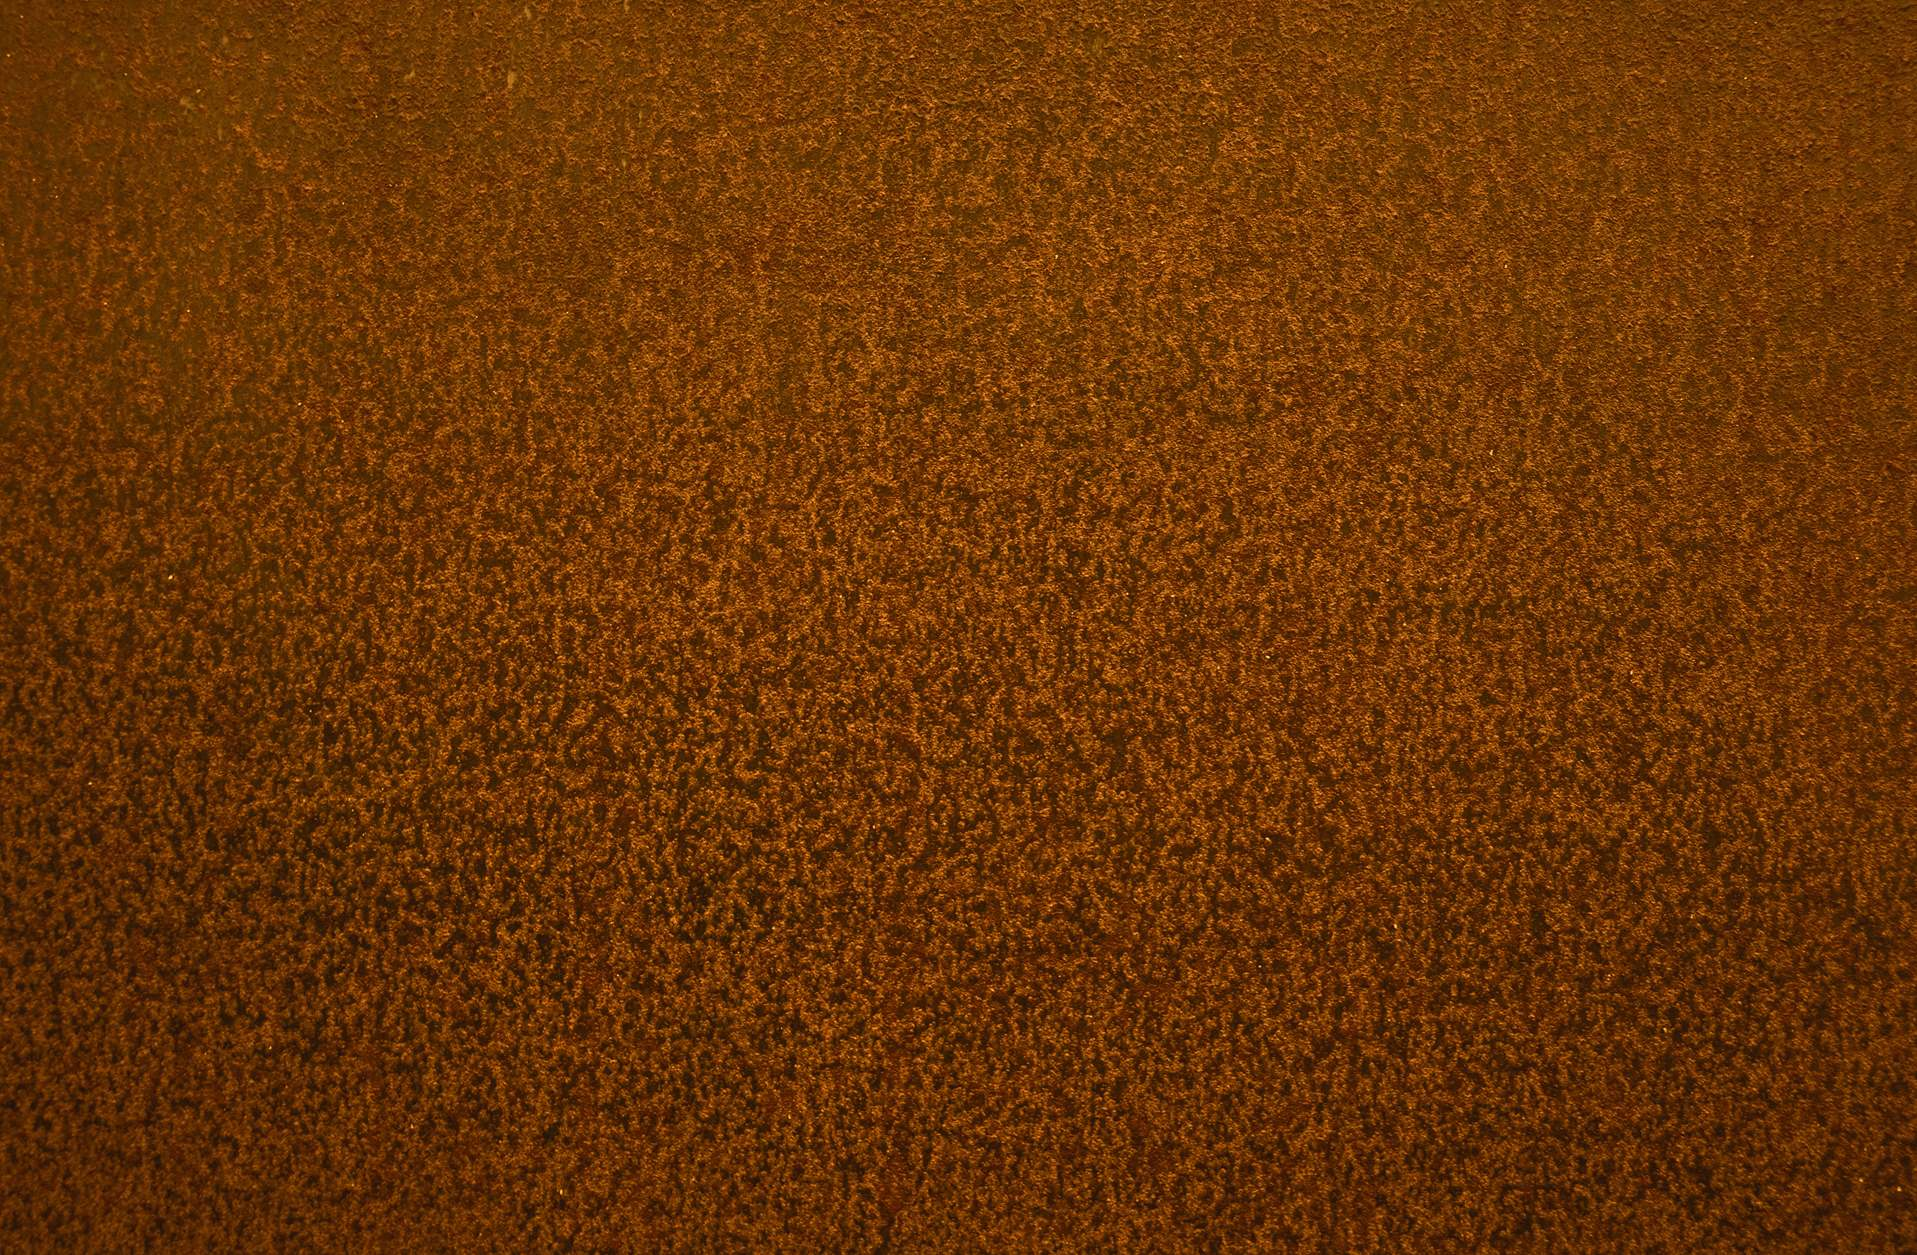 Brown rusty texture background photohdx for Brown wallpaper for walls